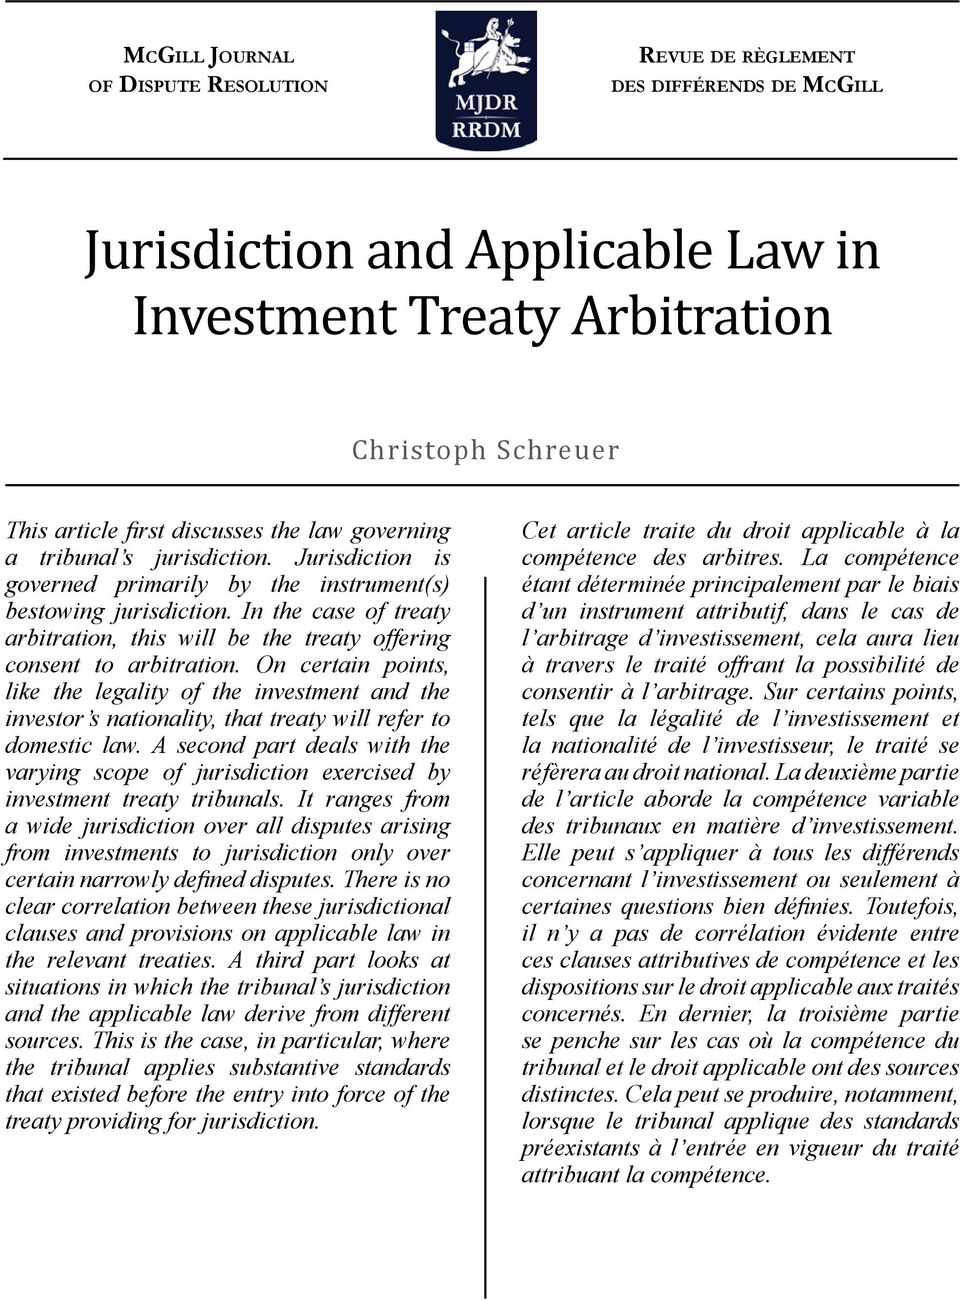 In the case of treaty arbitration, this will be the treaty offering consent to arbitration.